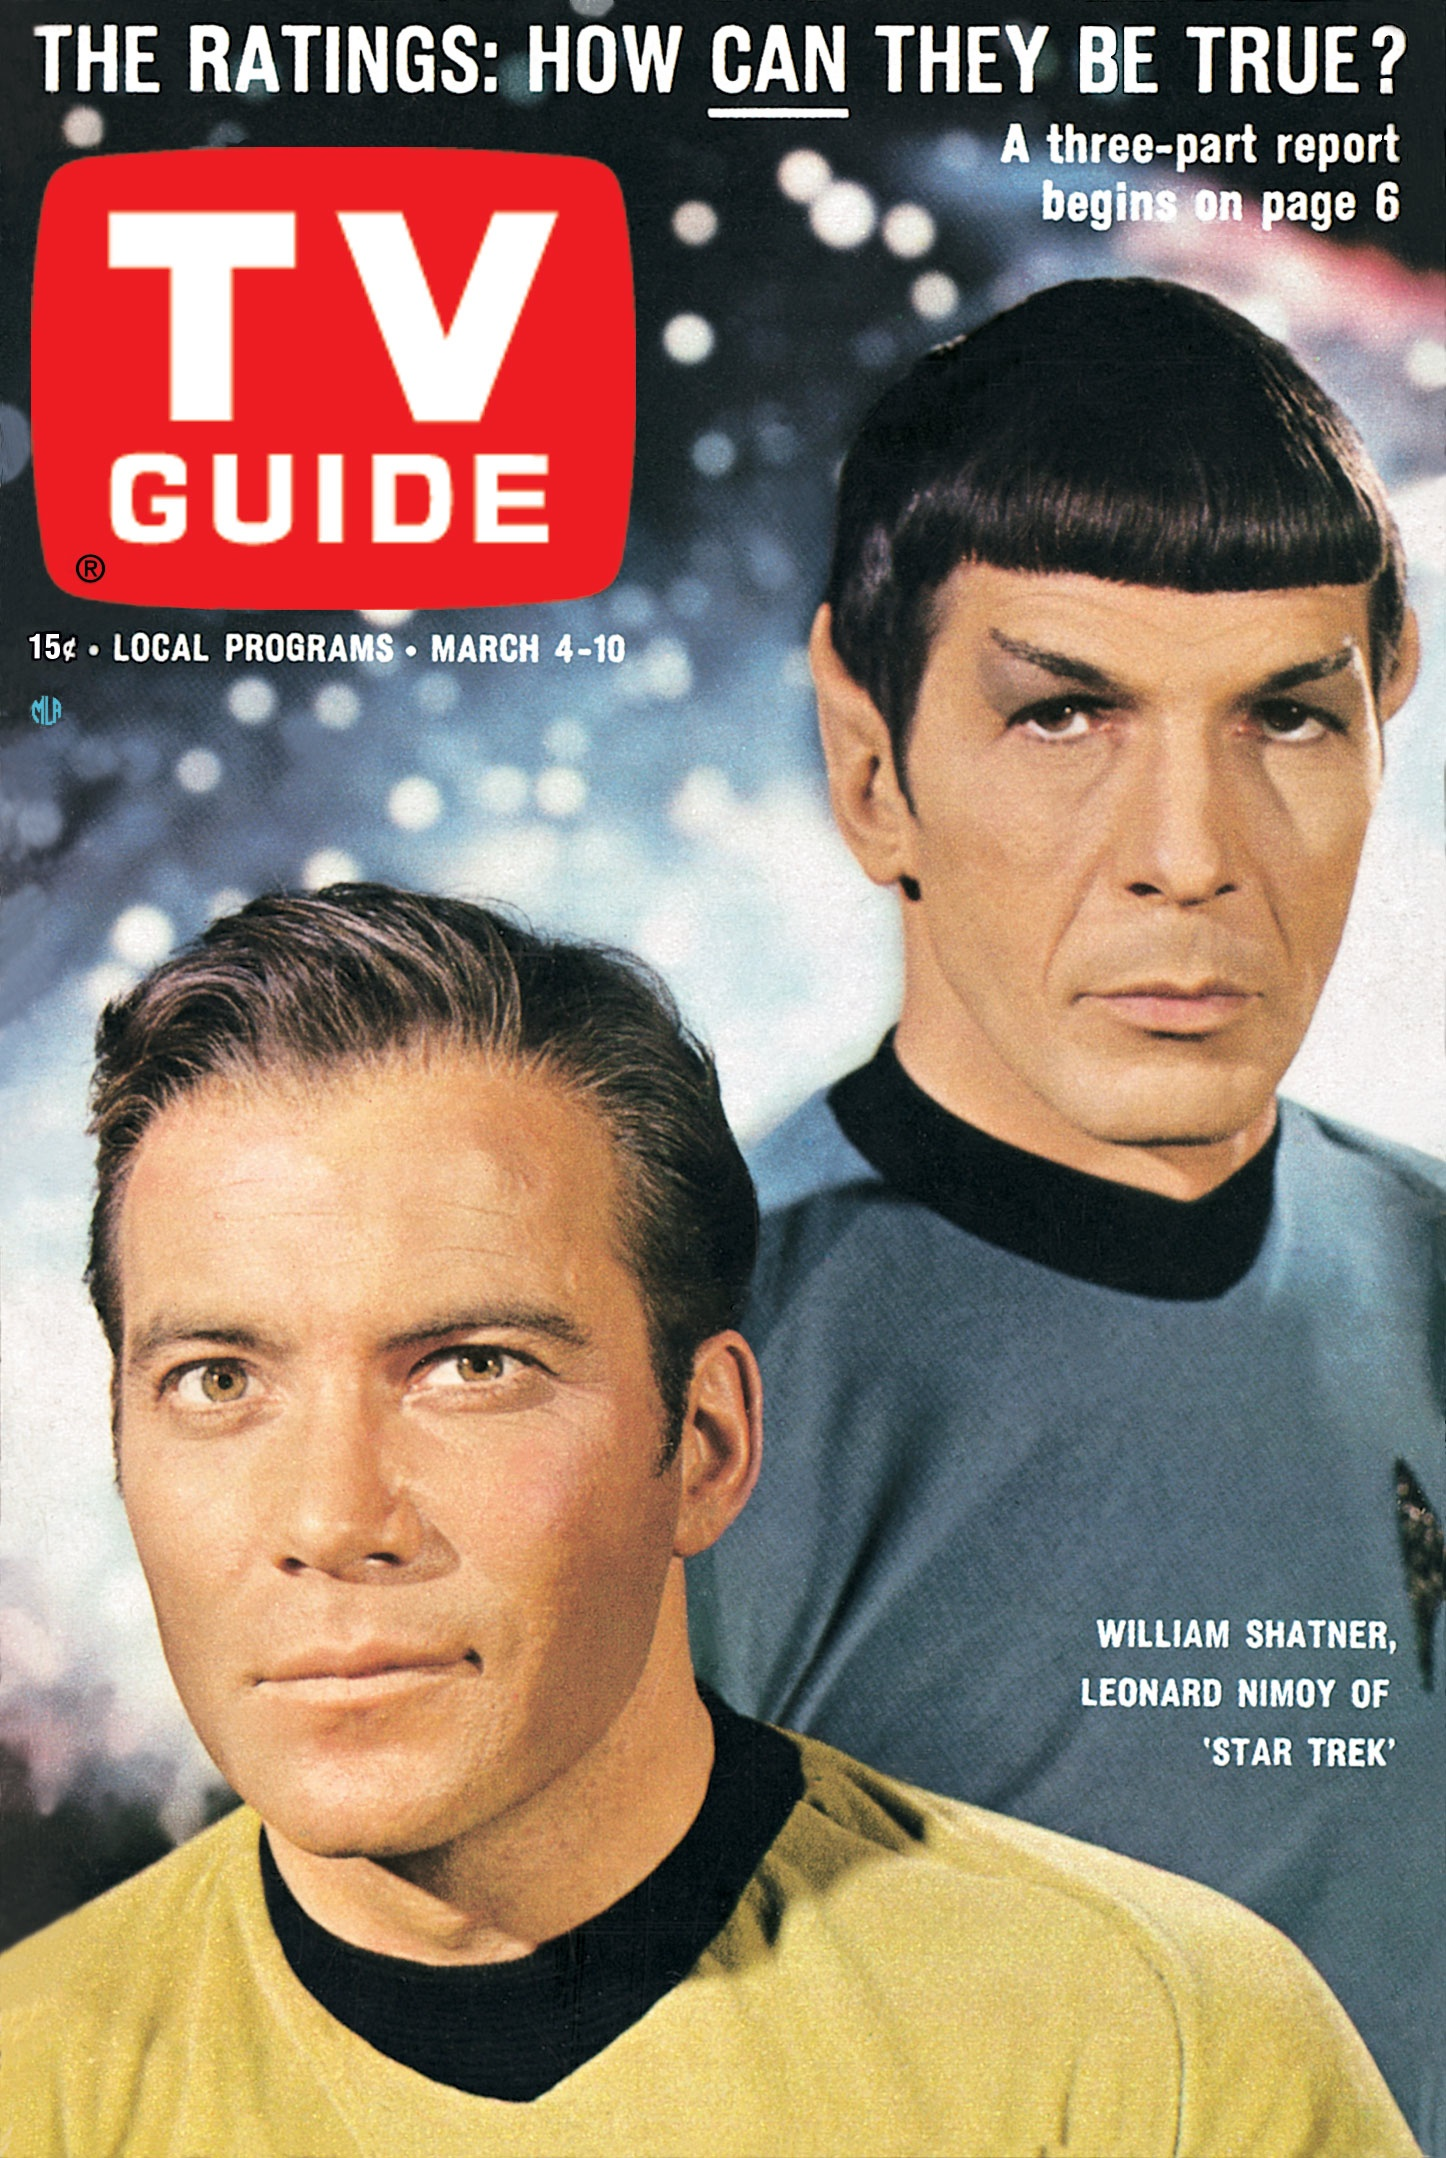 Star Trek s first TV Guide Cover      Mission Log Podcast